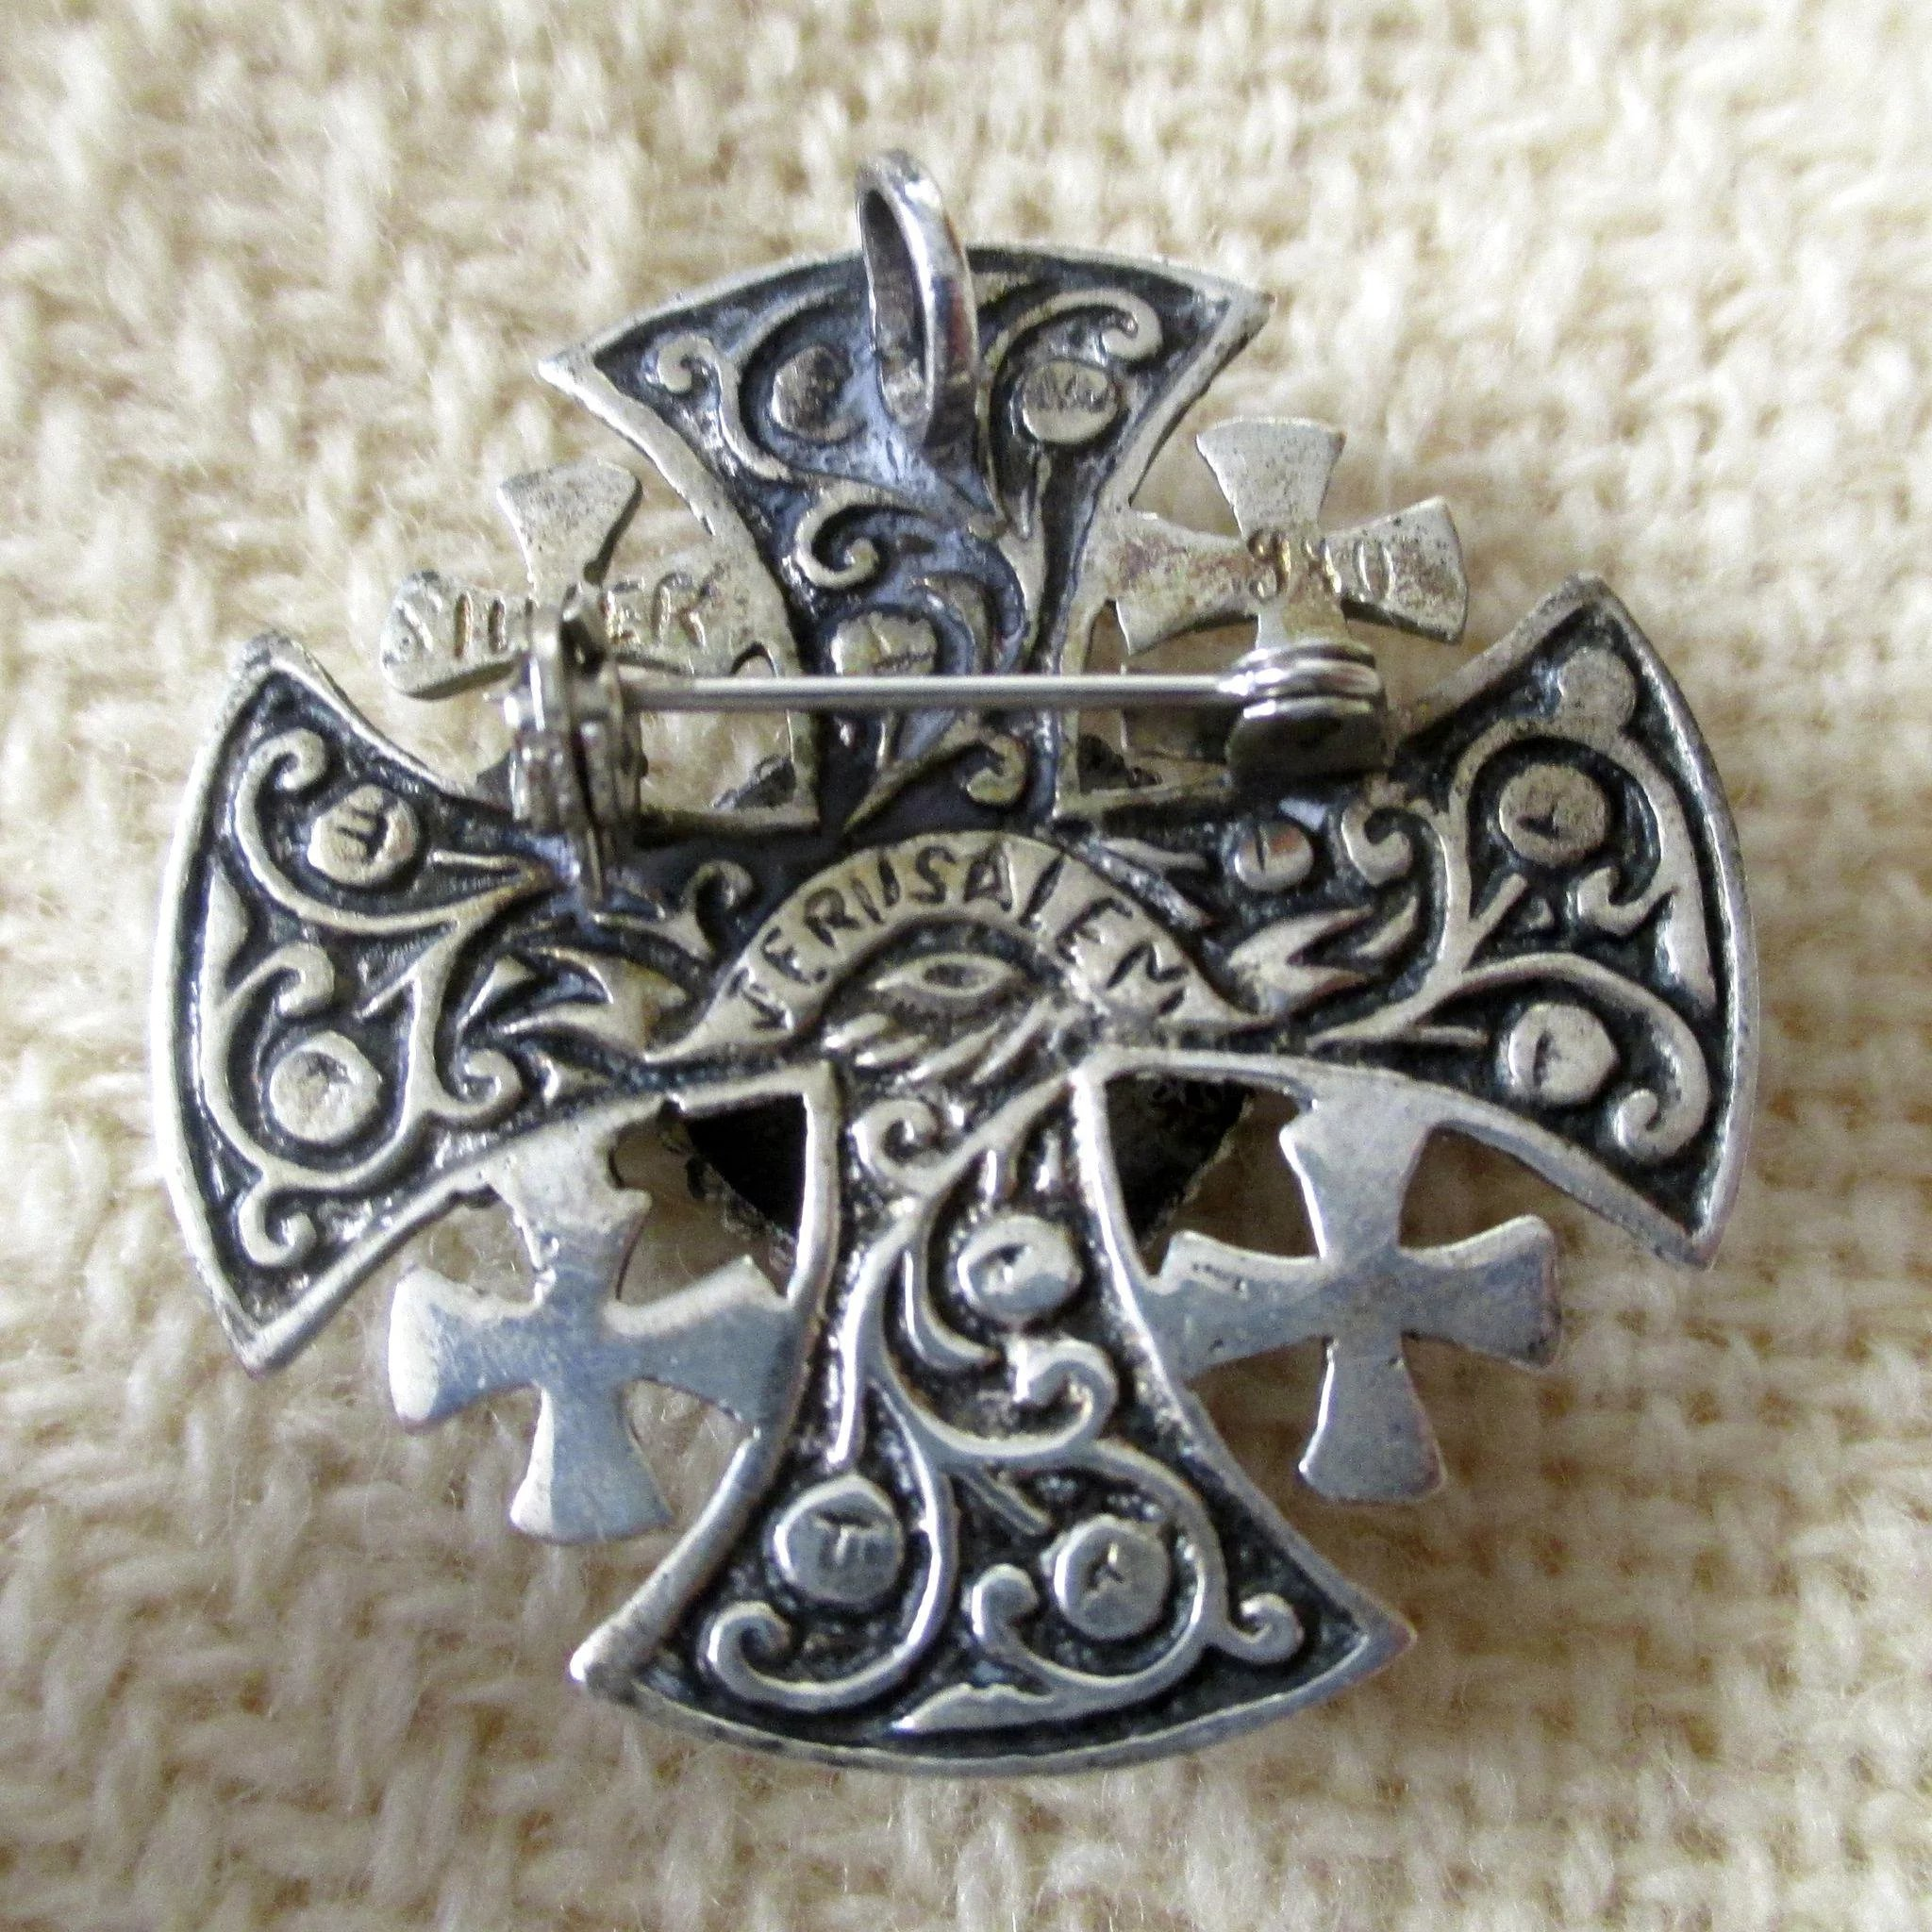 jerusalem cross ecatalogue en lot s sotheby of auctions treasures other pendant